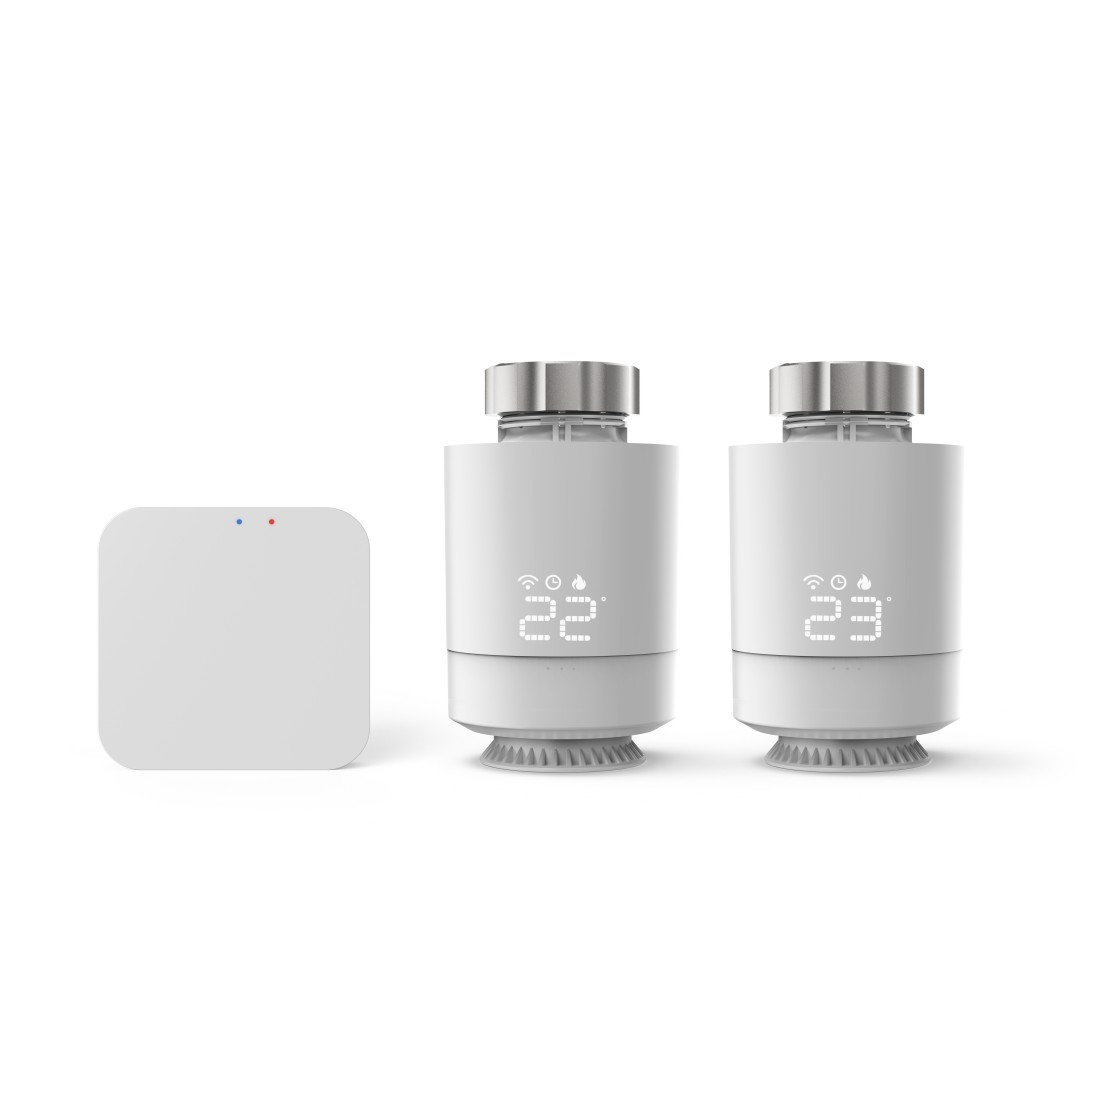 abx2 High-Res Image 2 - Hama, Commande de chauffage WiFi, 2x thermostats intelligents + base